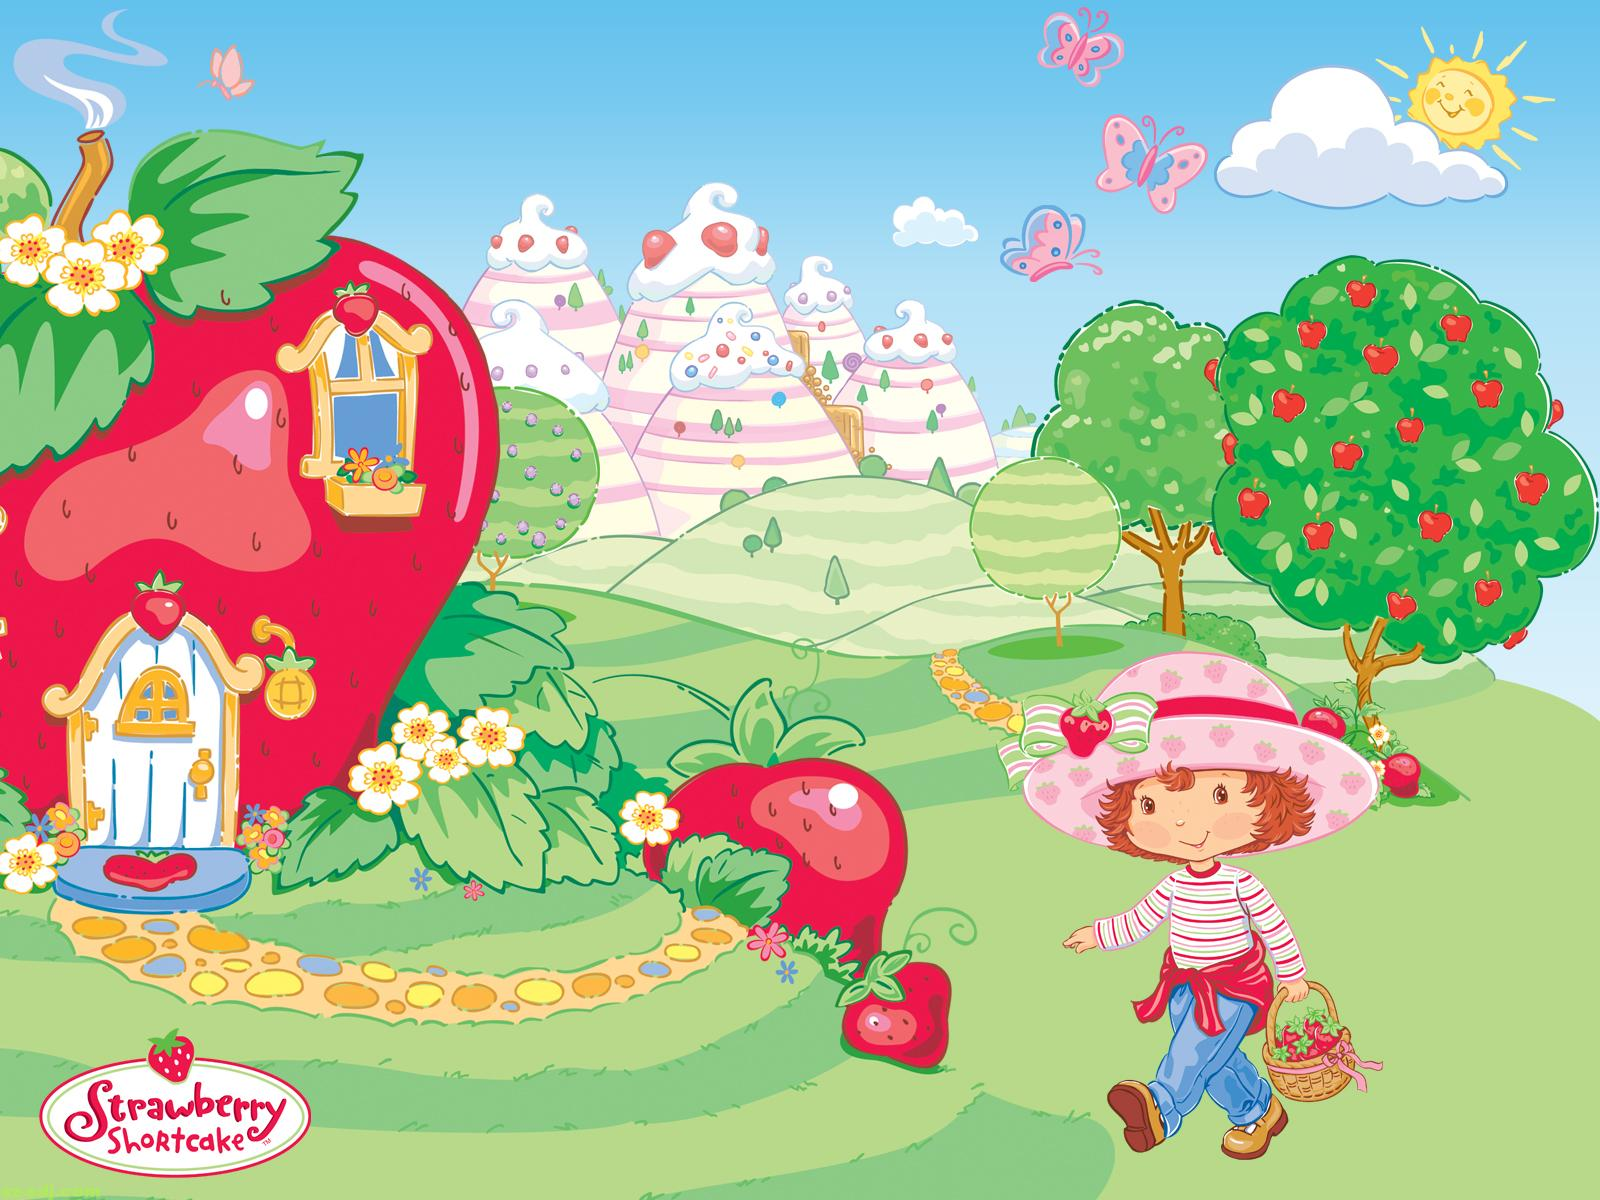 Baby strawberry shortcake pictures M: Strawberry Shortcake: Berry Friends Forever